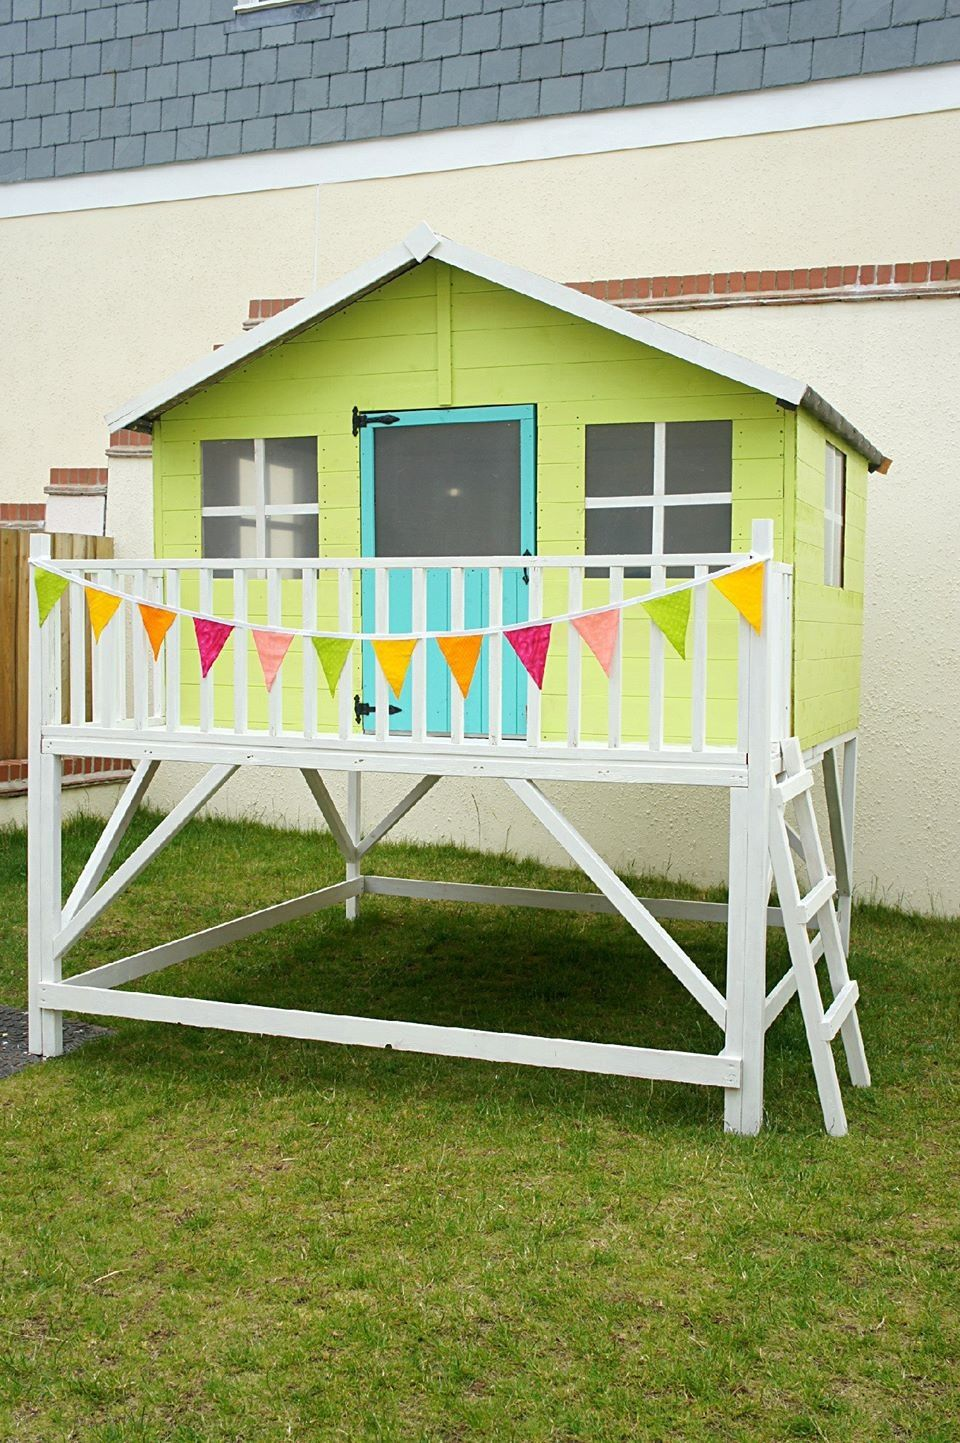 We brought this playhouse kit but painted and decorated it ourselves ...